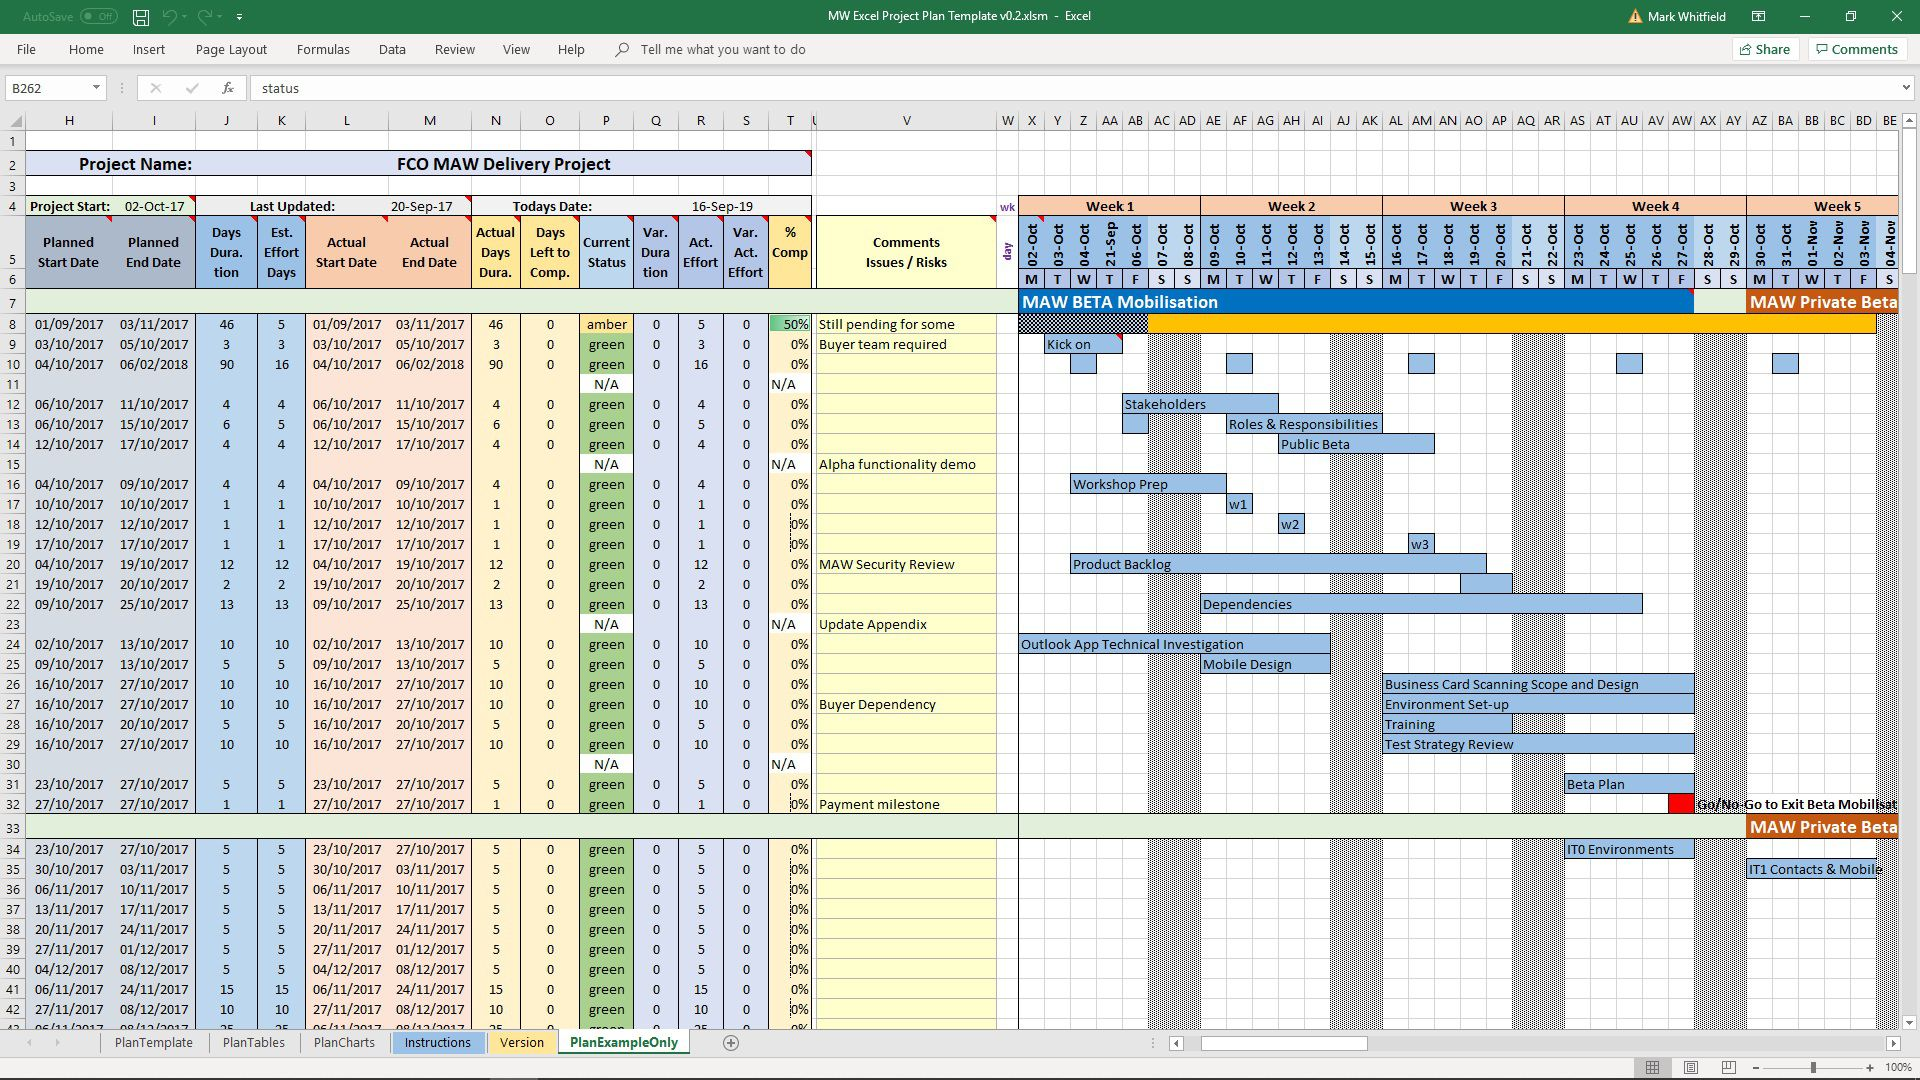 Top project management excel templates get a free smartsheet demo try smartsheet for free find the top project management templates in microsoft excel that you can easily download and use for free to help you track project status, communicate progress among team members and stakeholders, and manage issues as … Analysistabs Advanced Schedule Project Plan Excel Template Tools Formula Planning Management